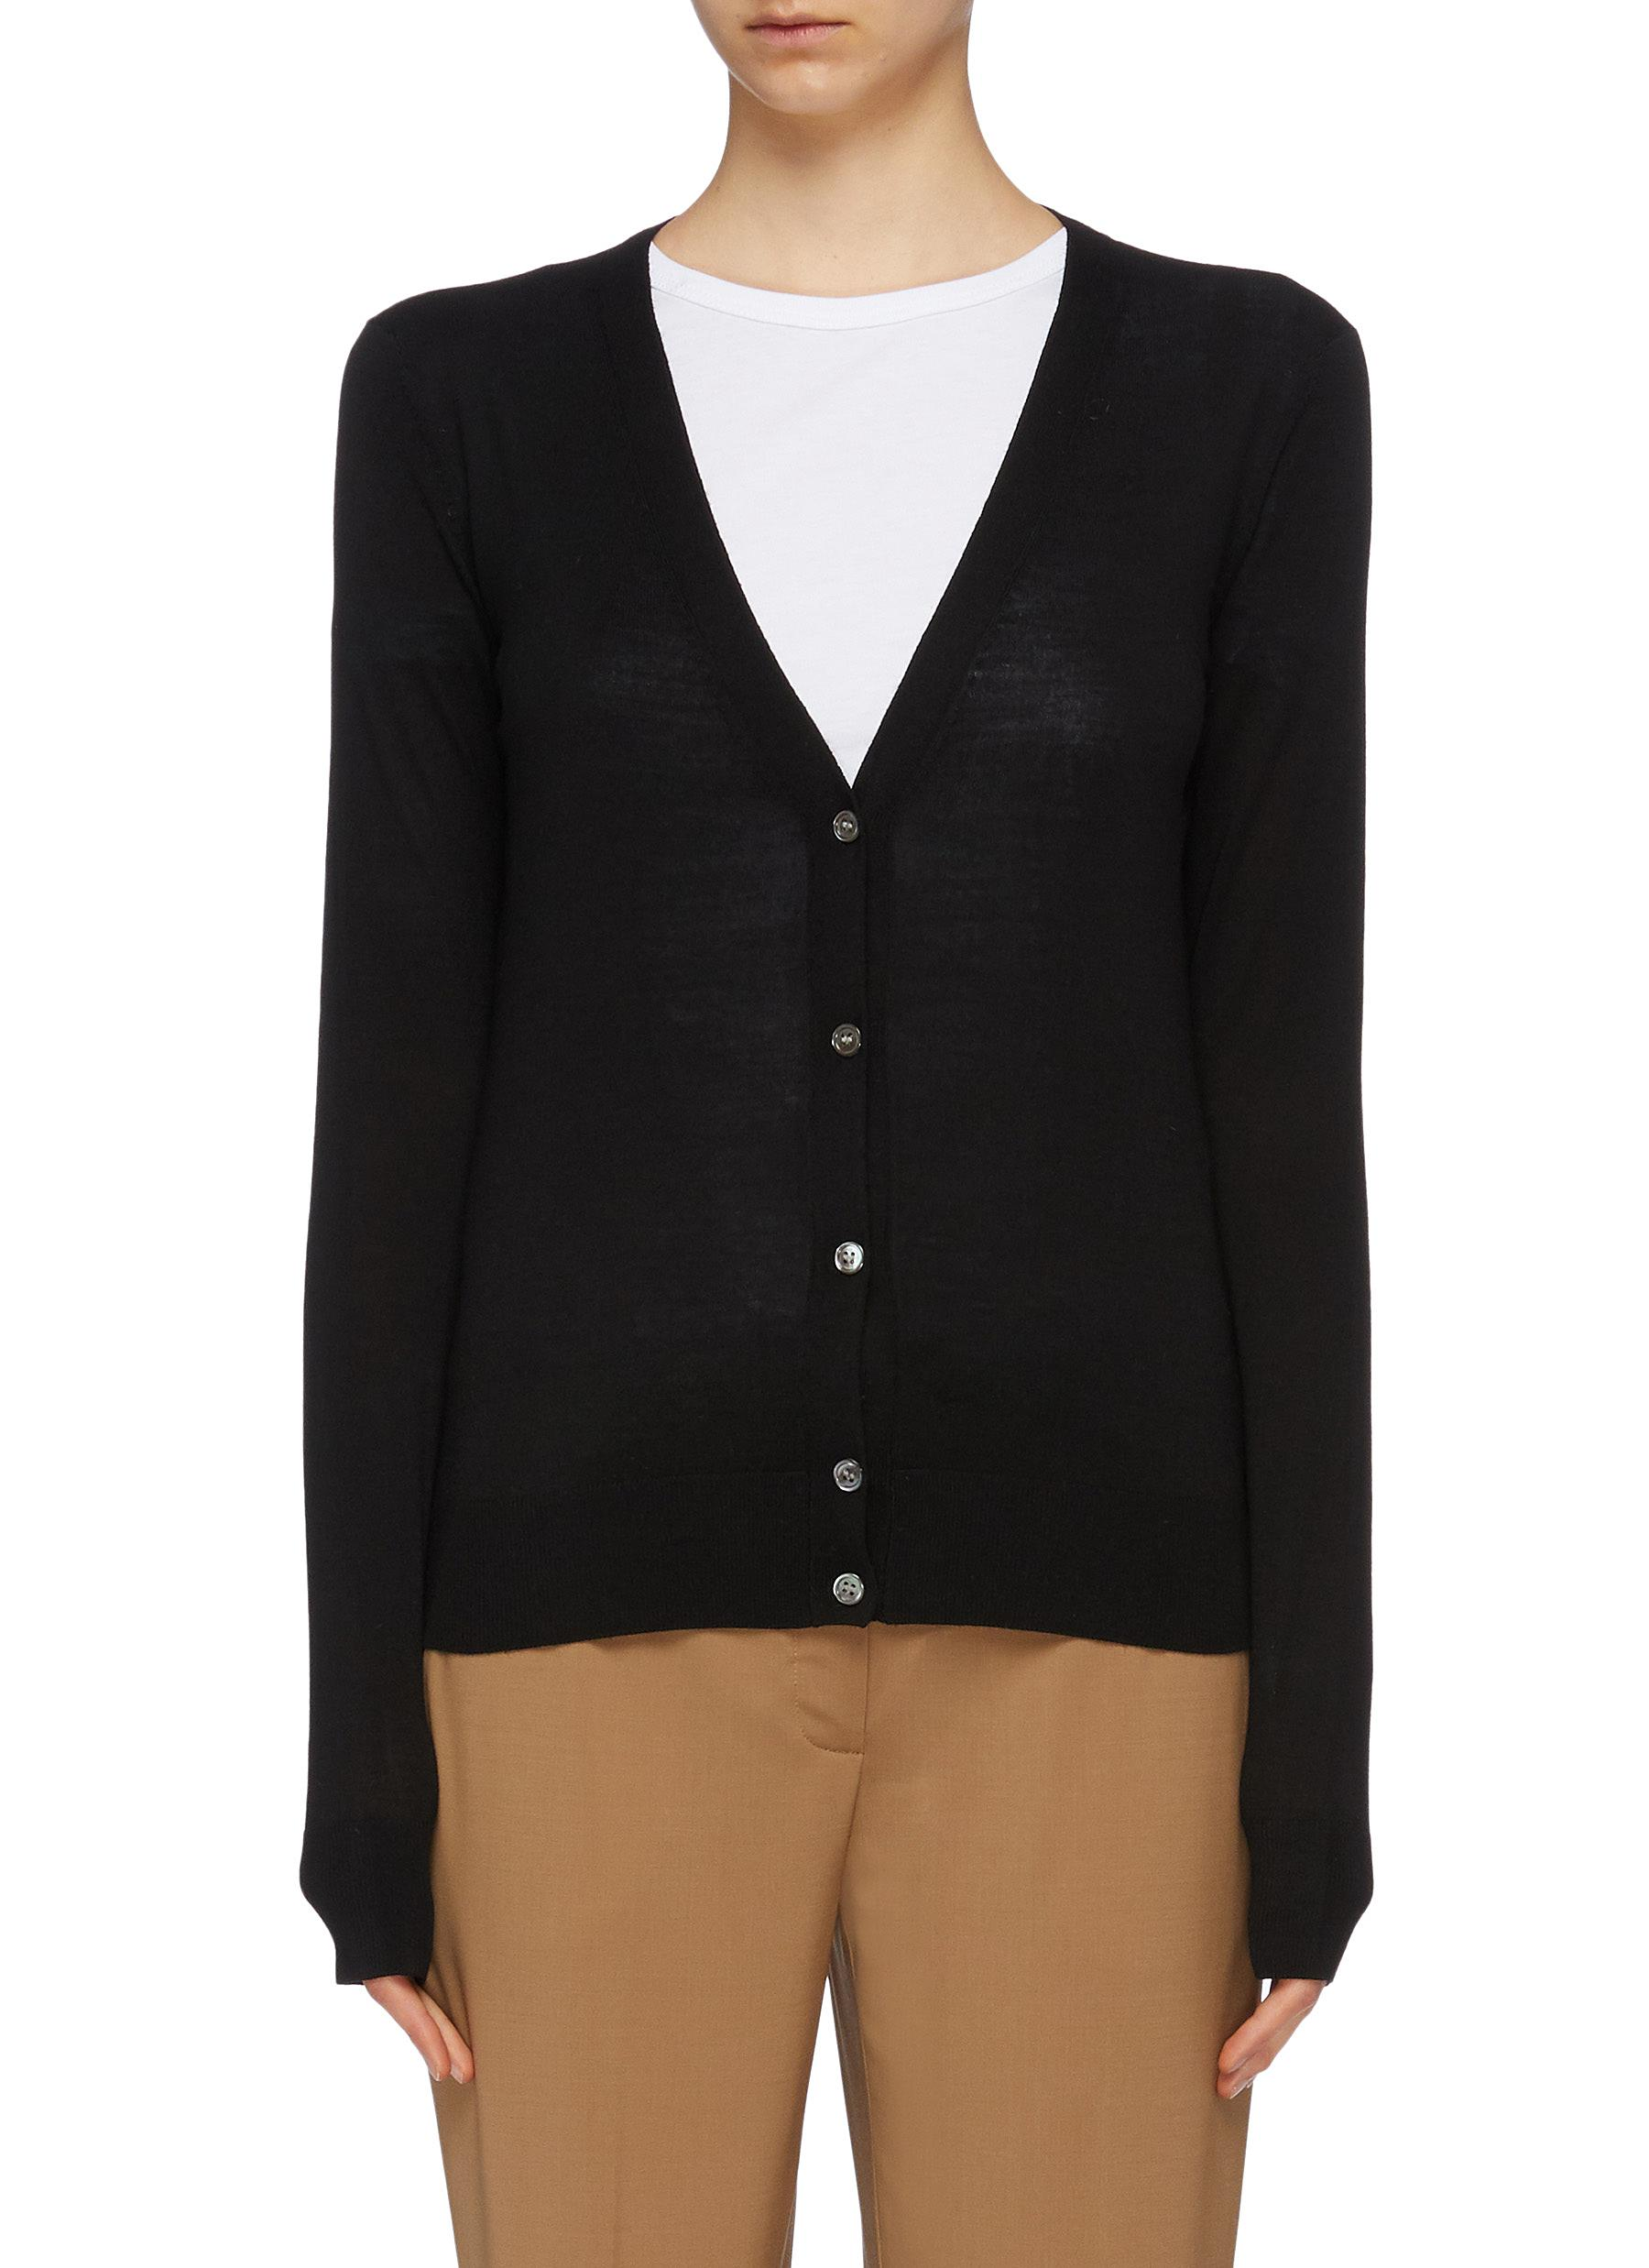 Wool blend V-neck cardigan by Theory